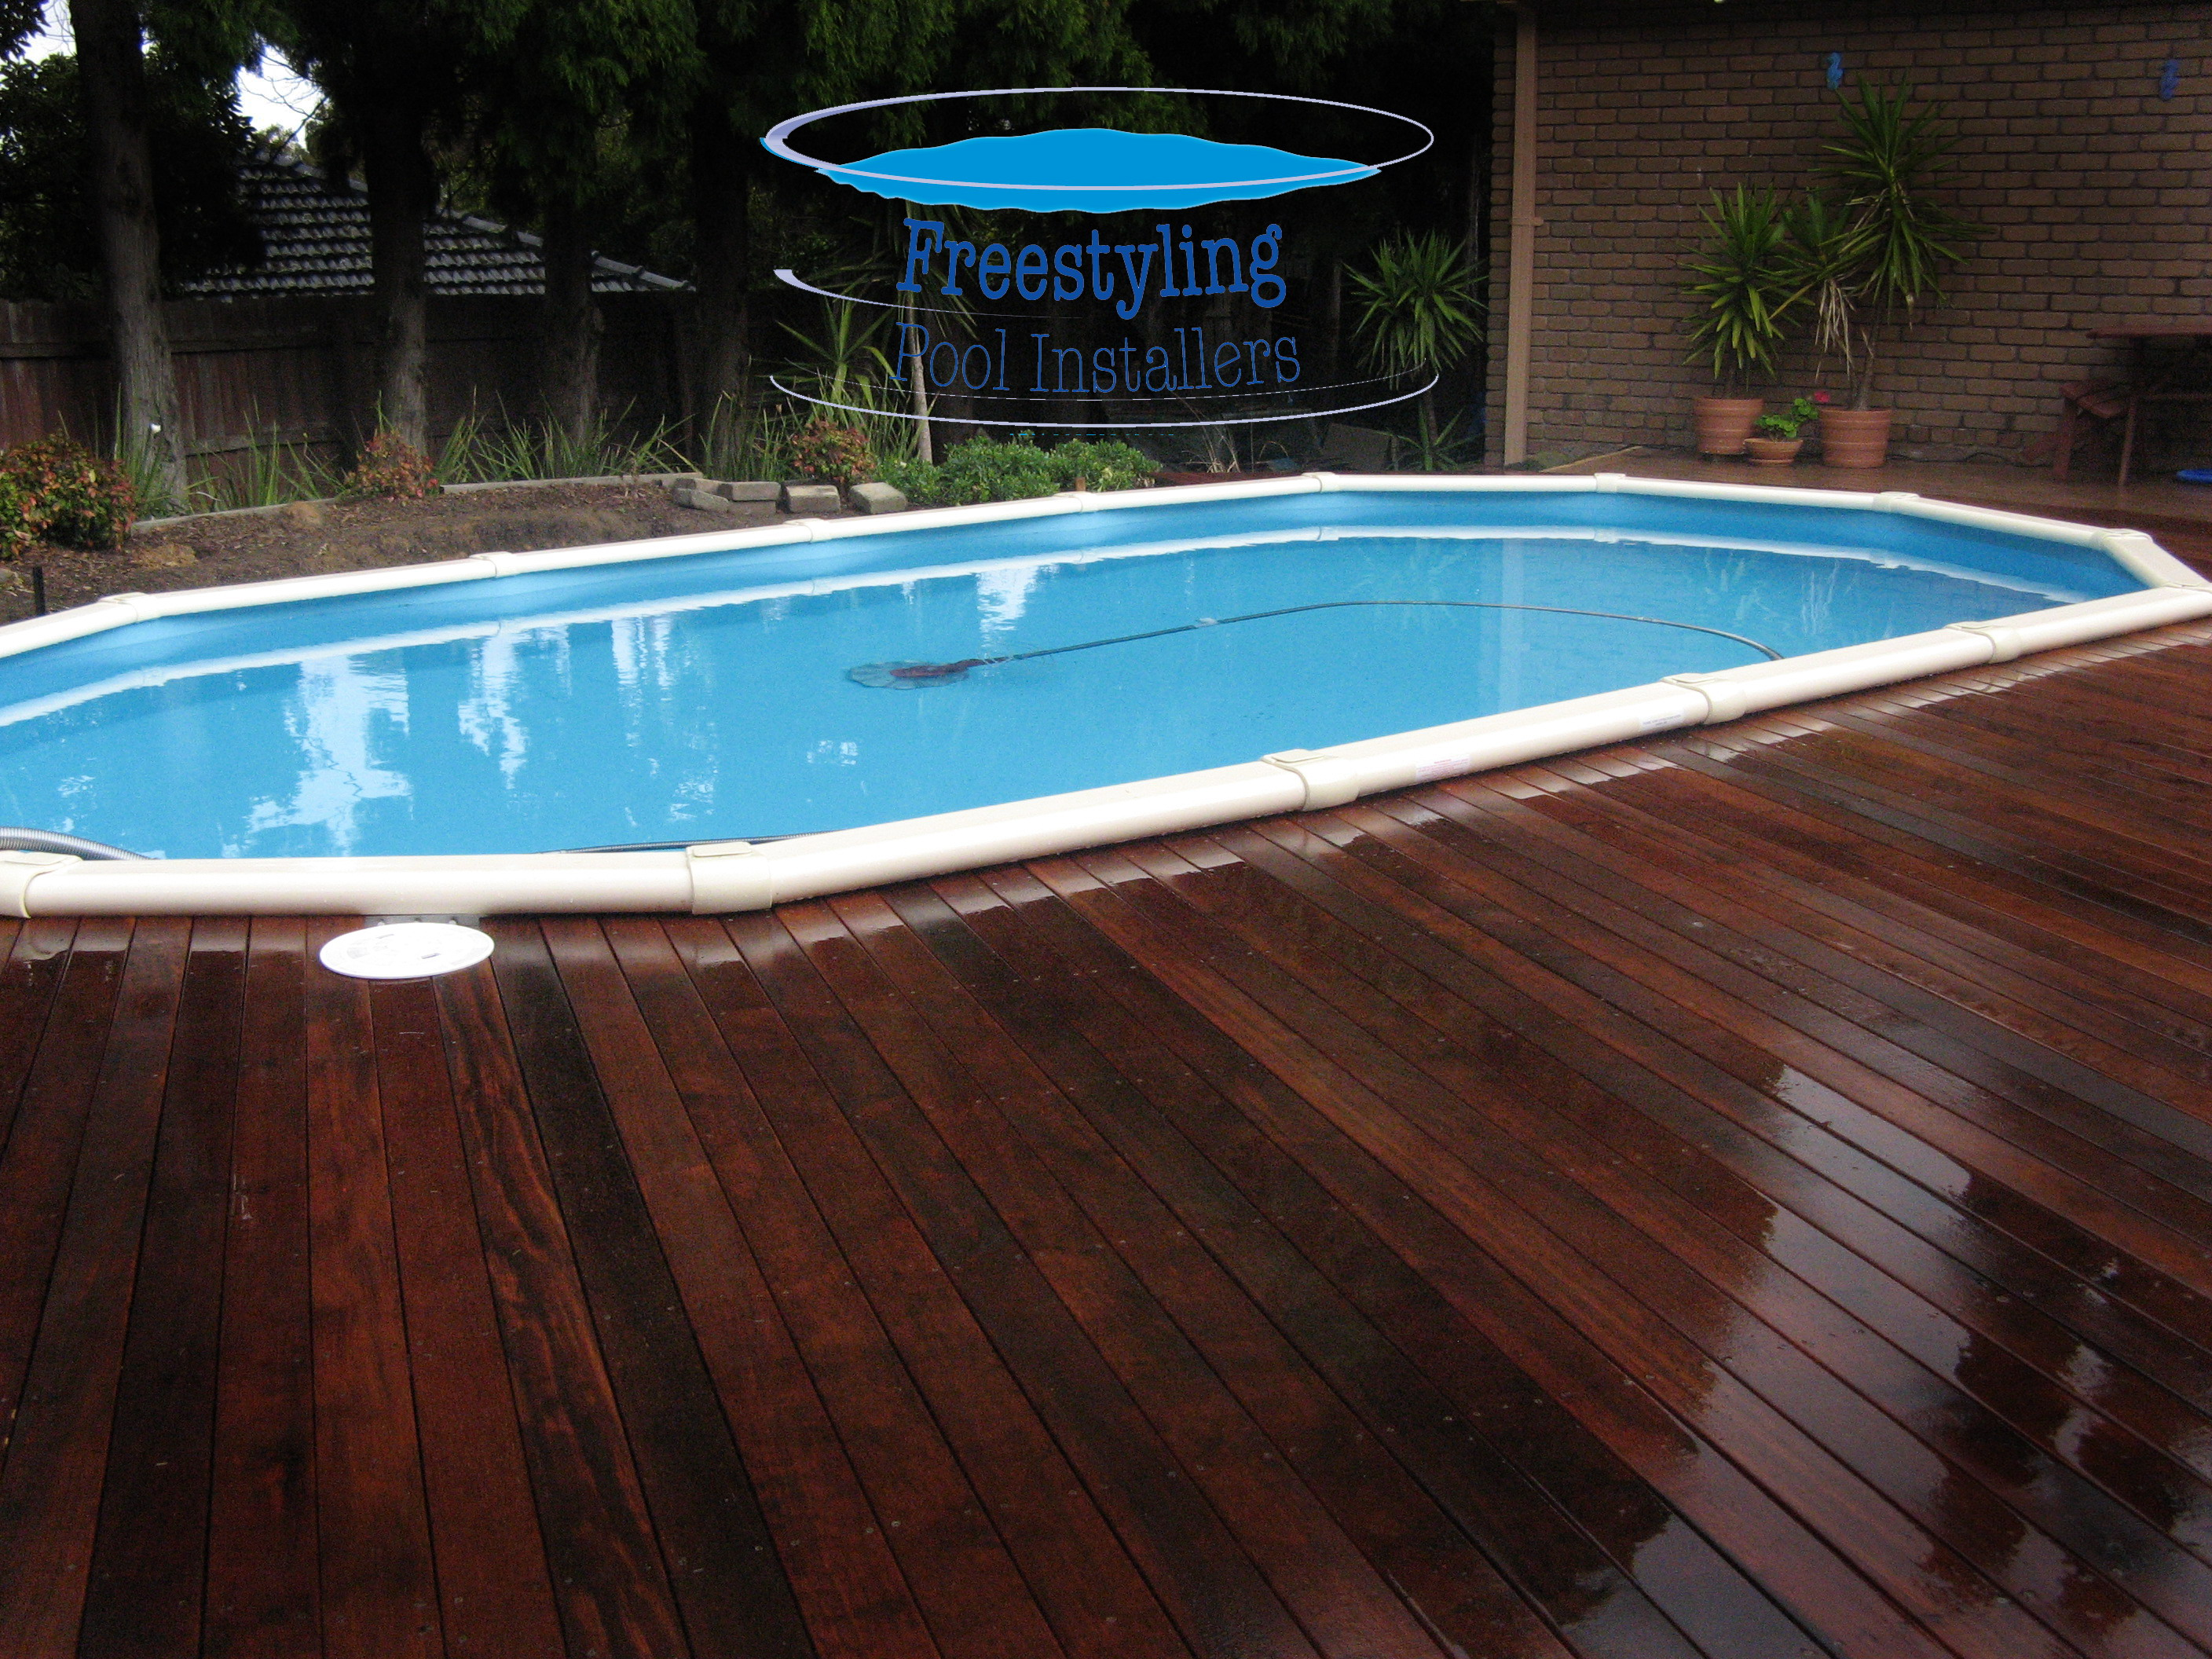 Freestyling pool installers melton melbourne above for Above ground pool installation